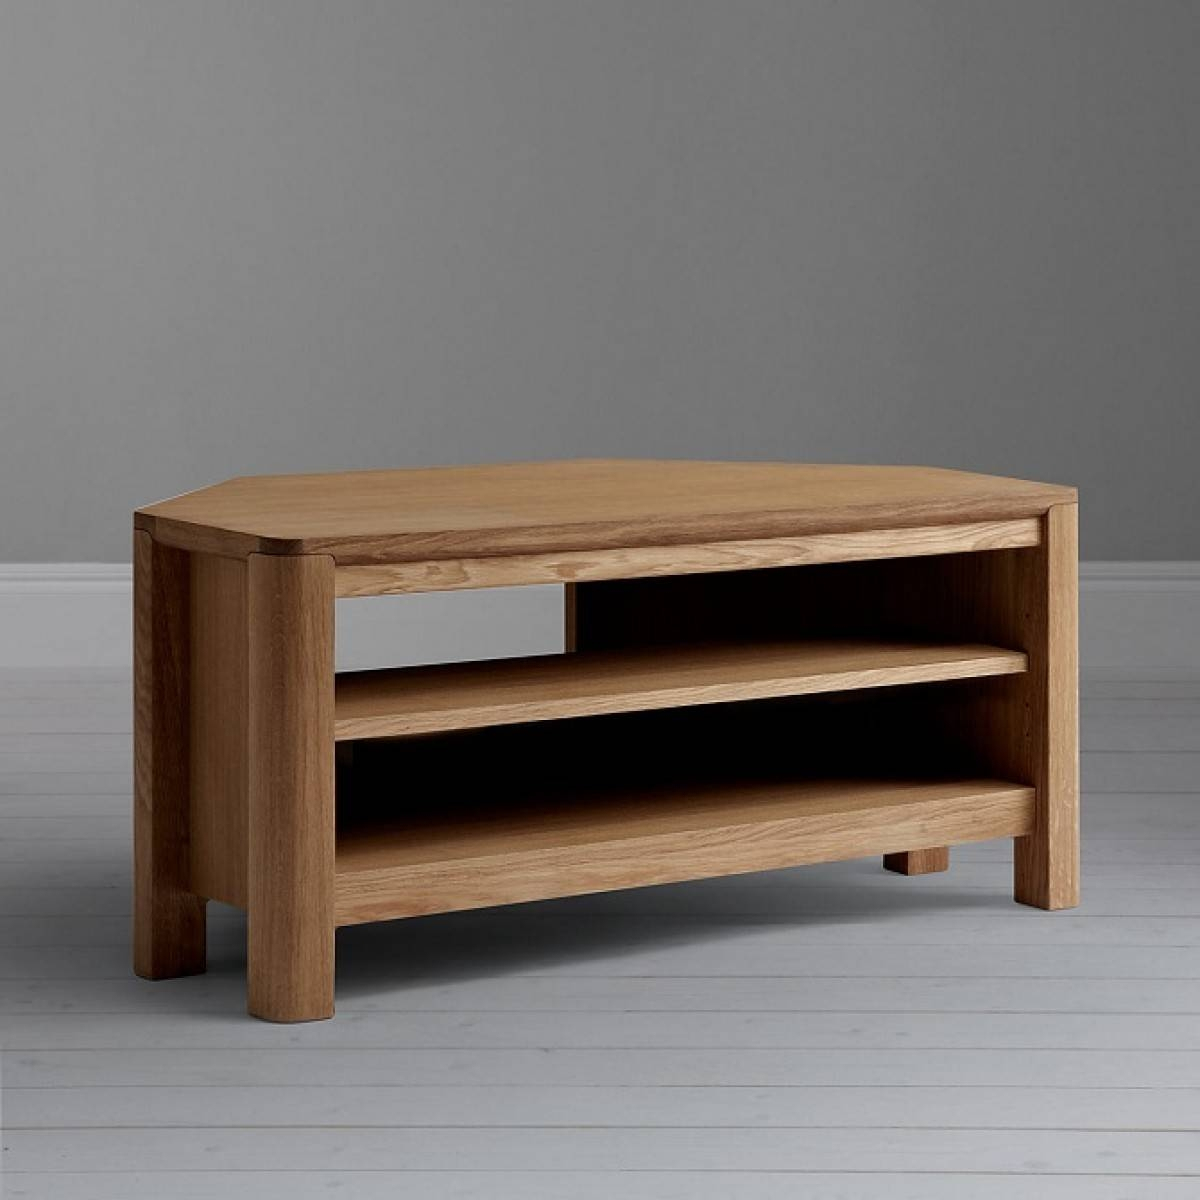 Soho Corner Tv Unit - Soho Range - Shoprange - Furniture for Soho Tv Unit (Image 8 of 15)